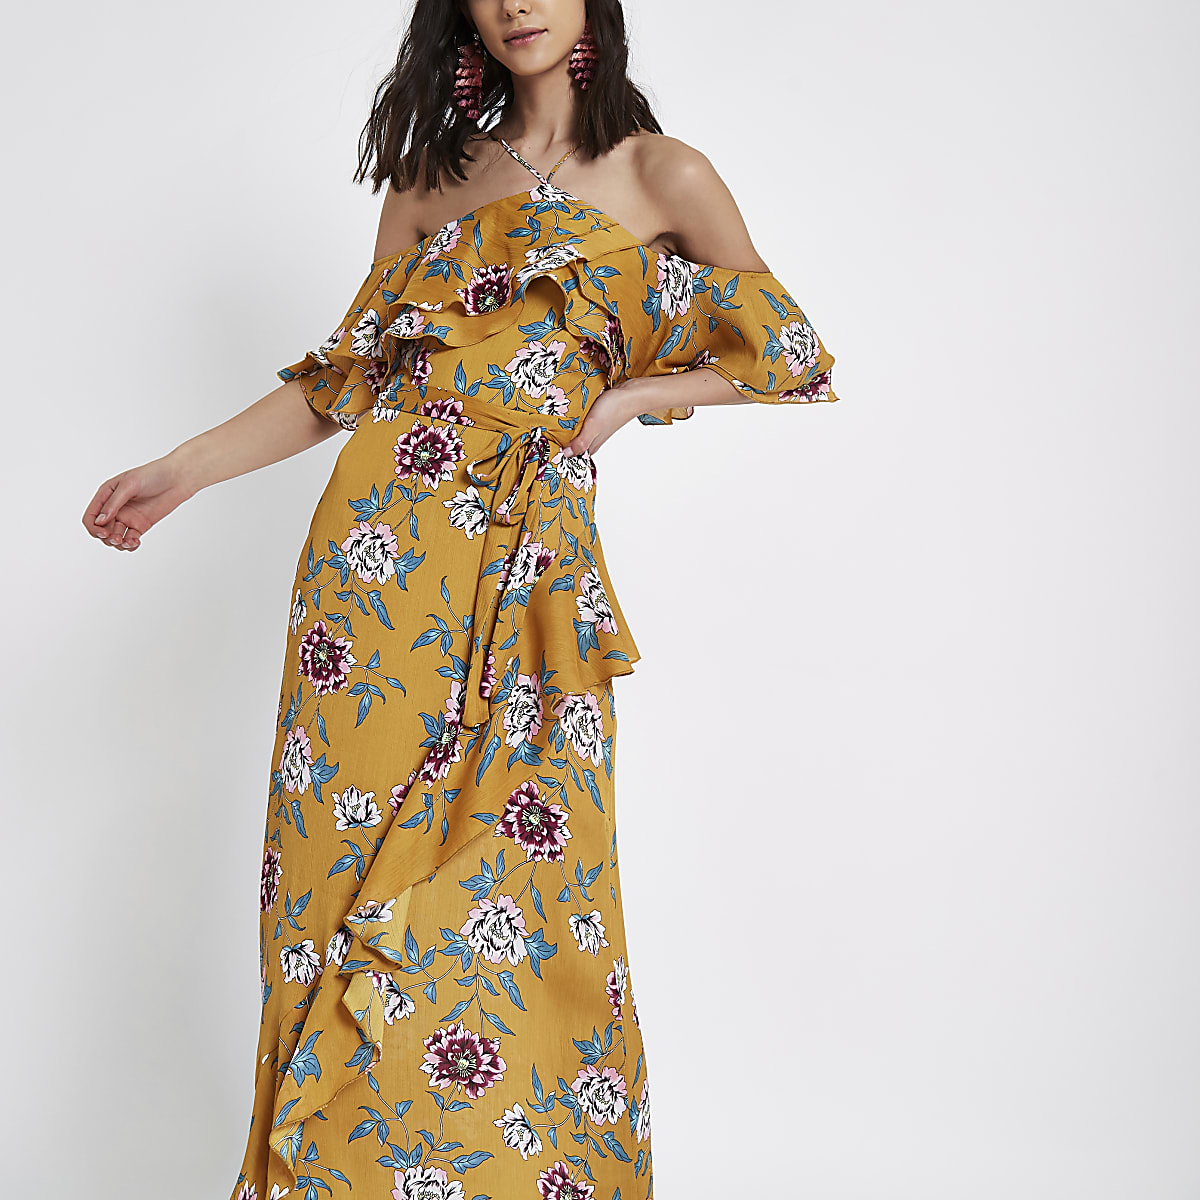 e3381e01a47 Yellow floral print cold shoulder maxi dress - Maxi Dresses - Dresses -  women